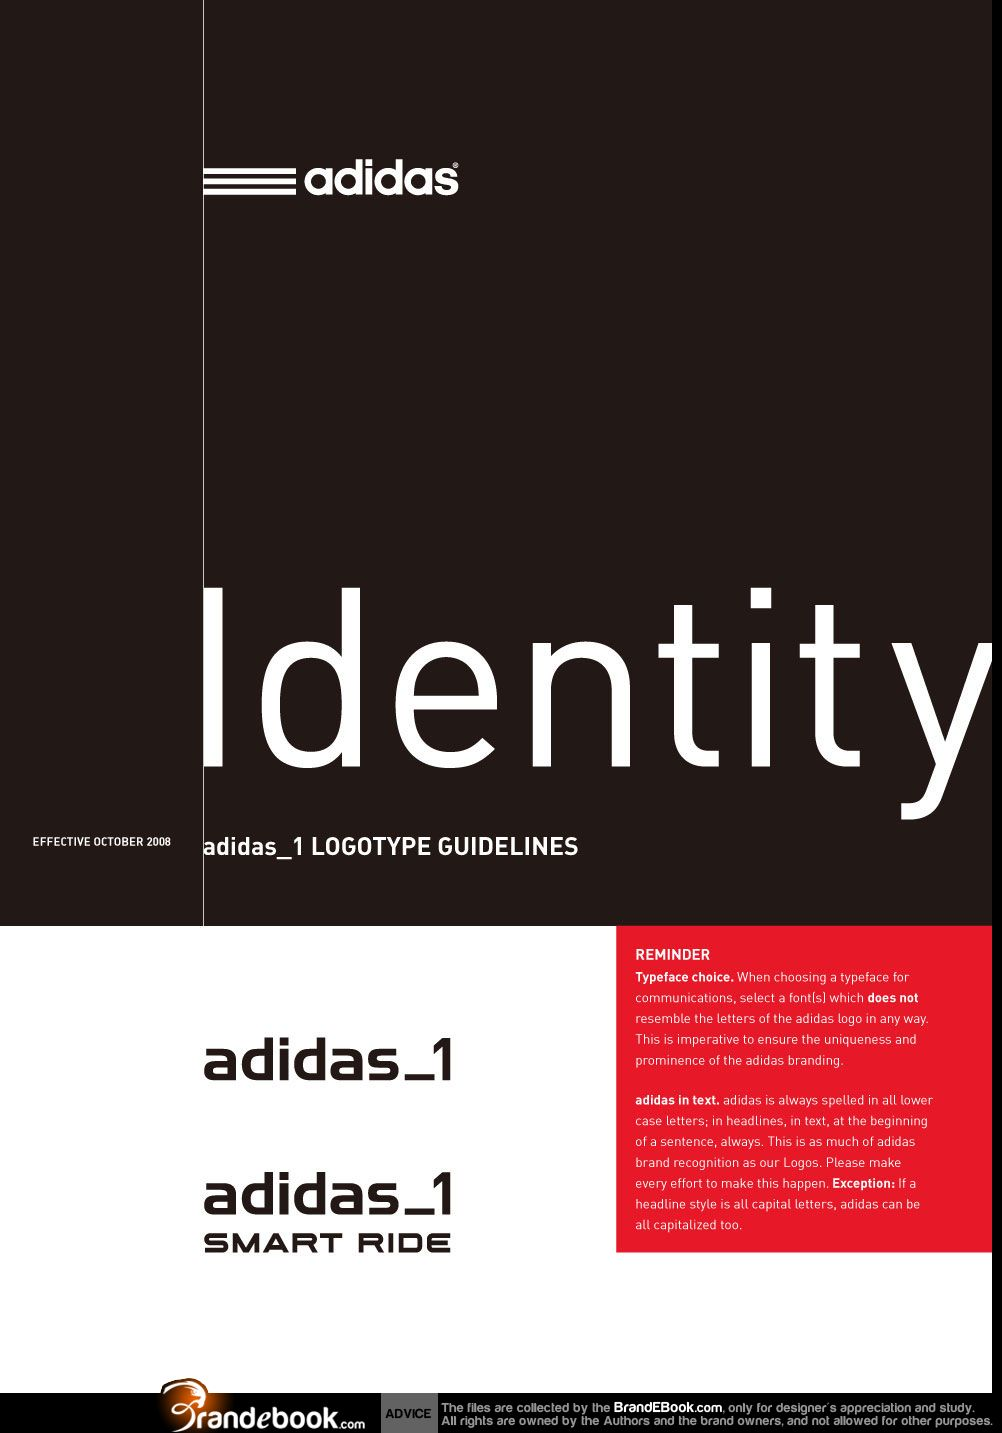 brand manual corporate identity guidelines pdf download categories rh brandebook com Adidas Owner's House Adidas Owner Name